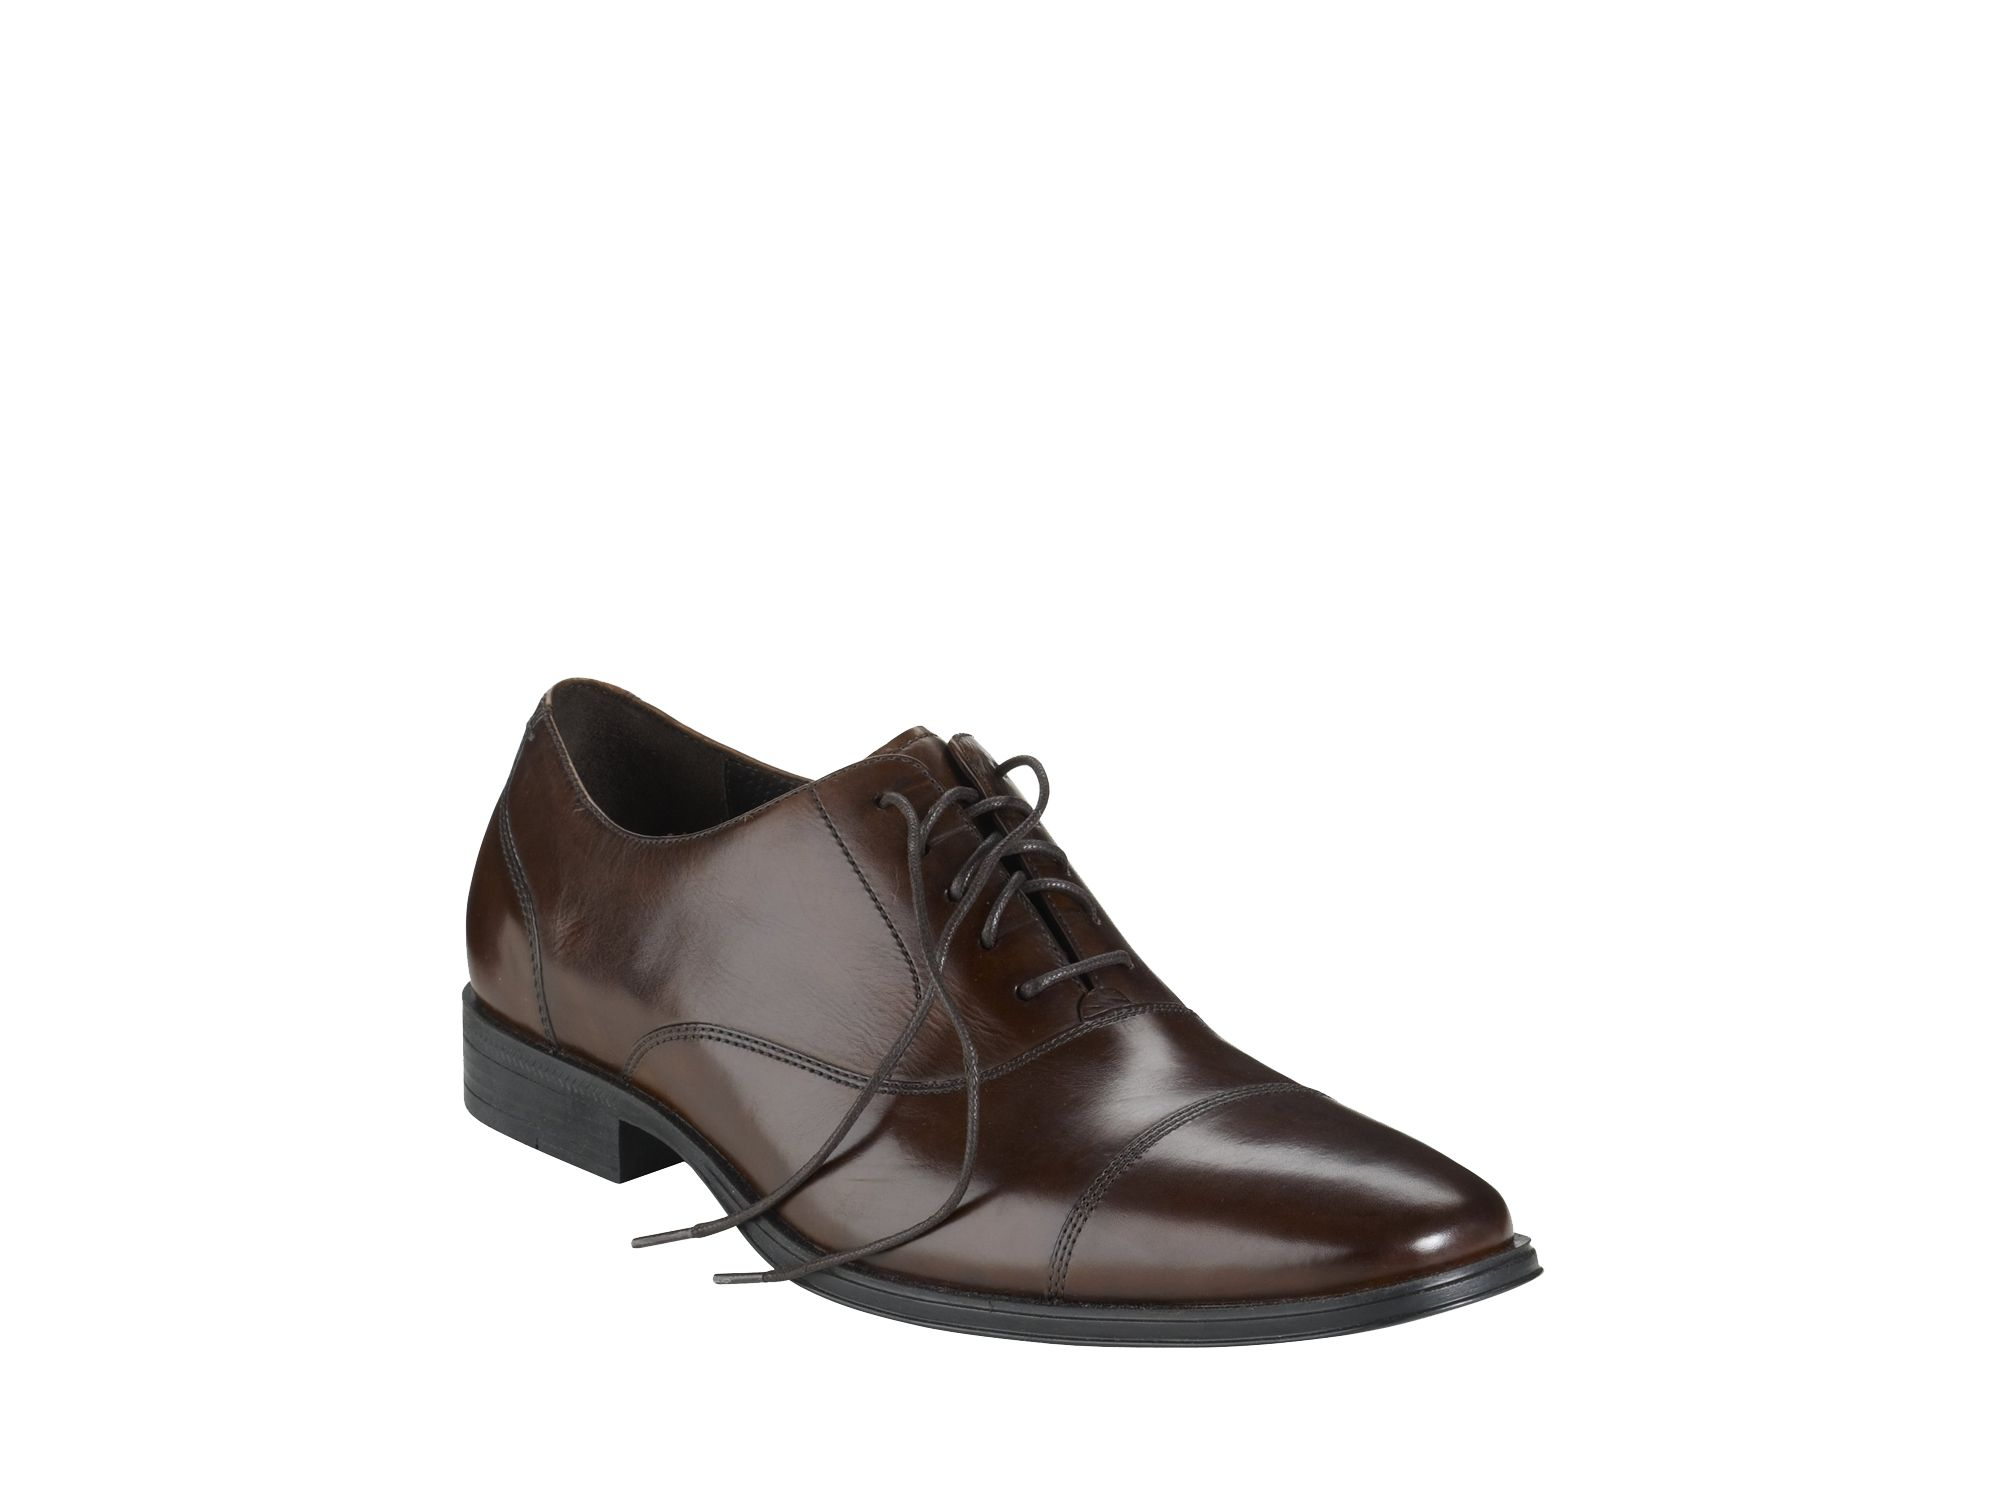 Cole Haan Nike Air Adams Cap Toe Oxford In Brown For Men (dark Brown) | Lyst